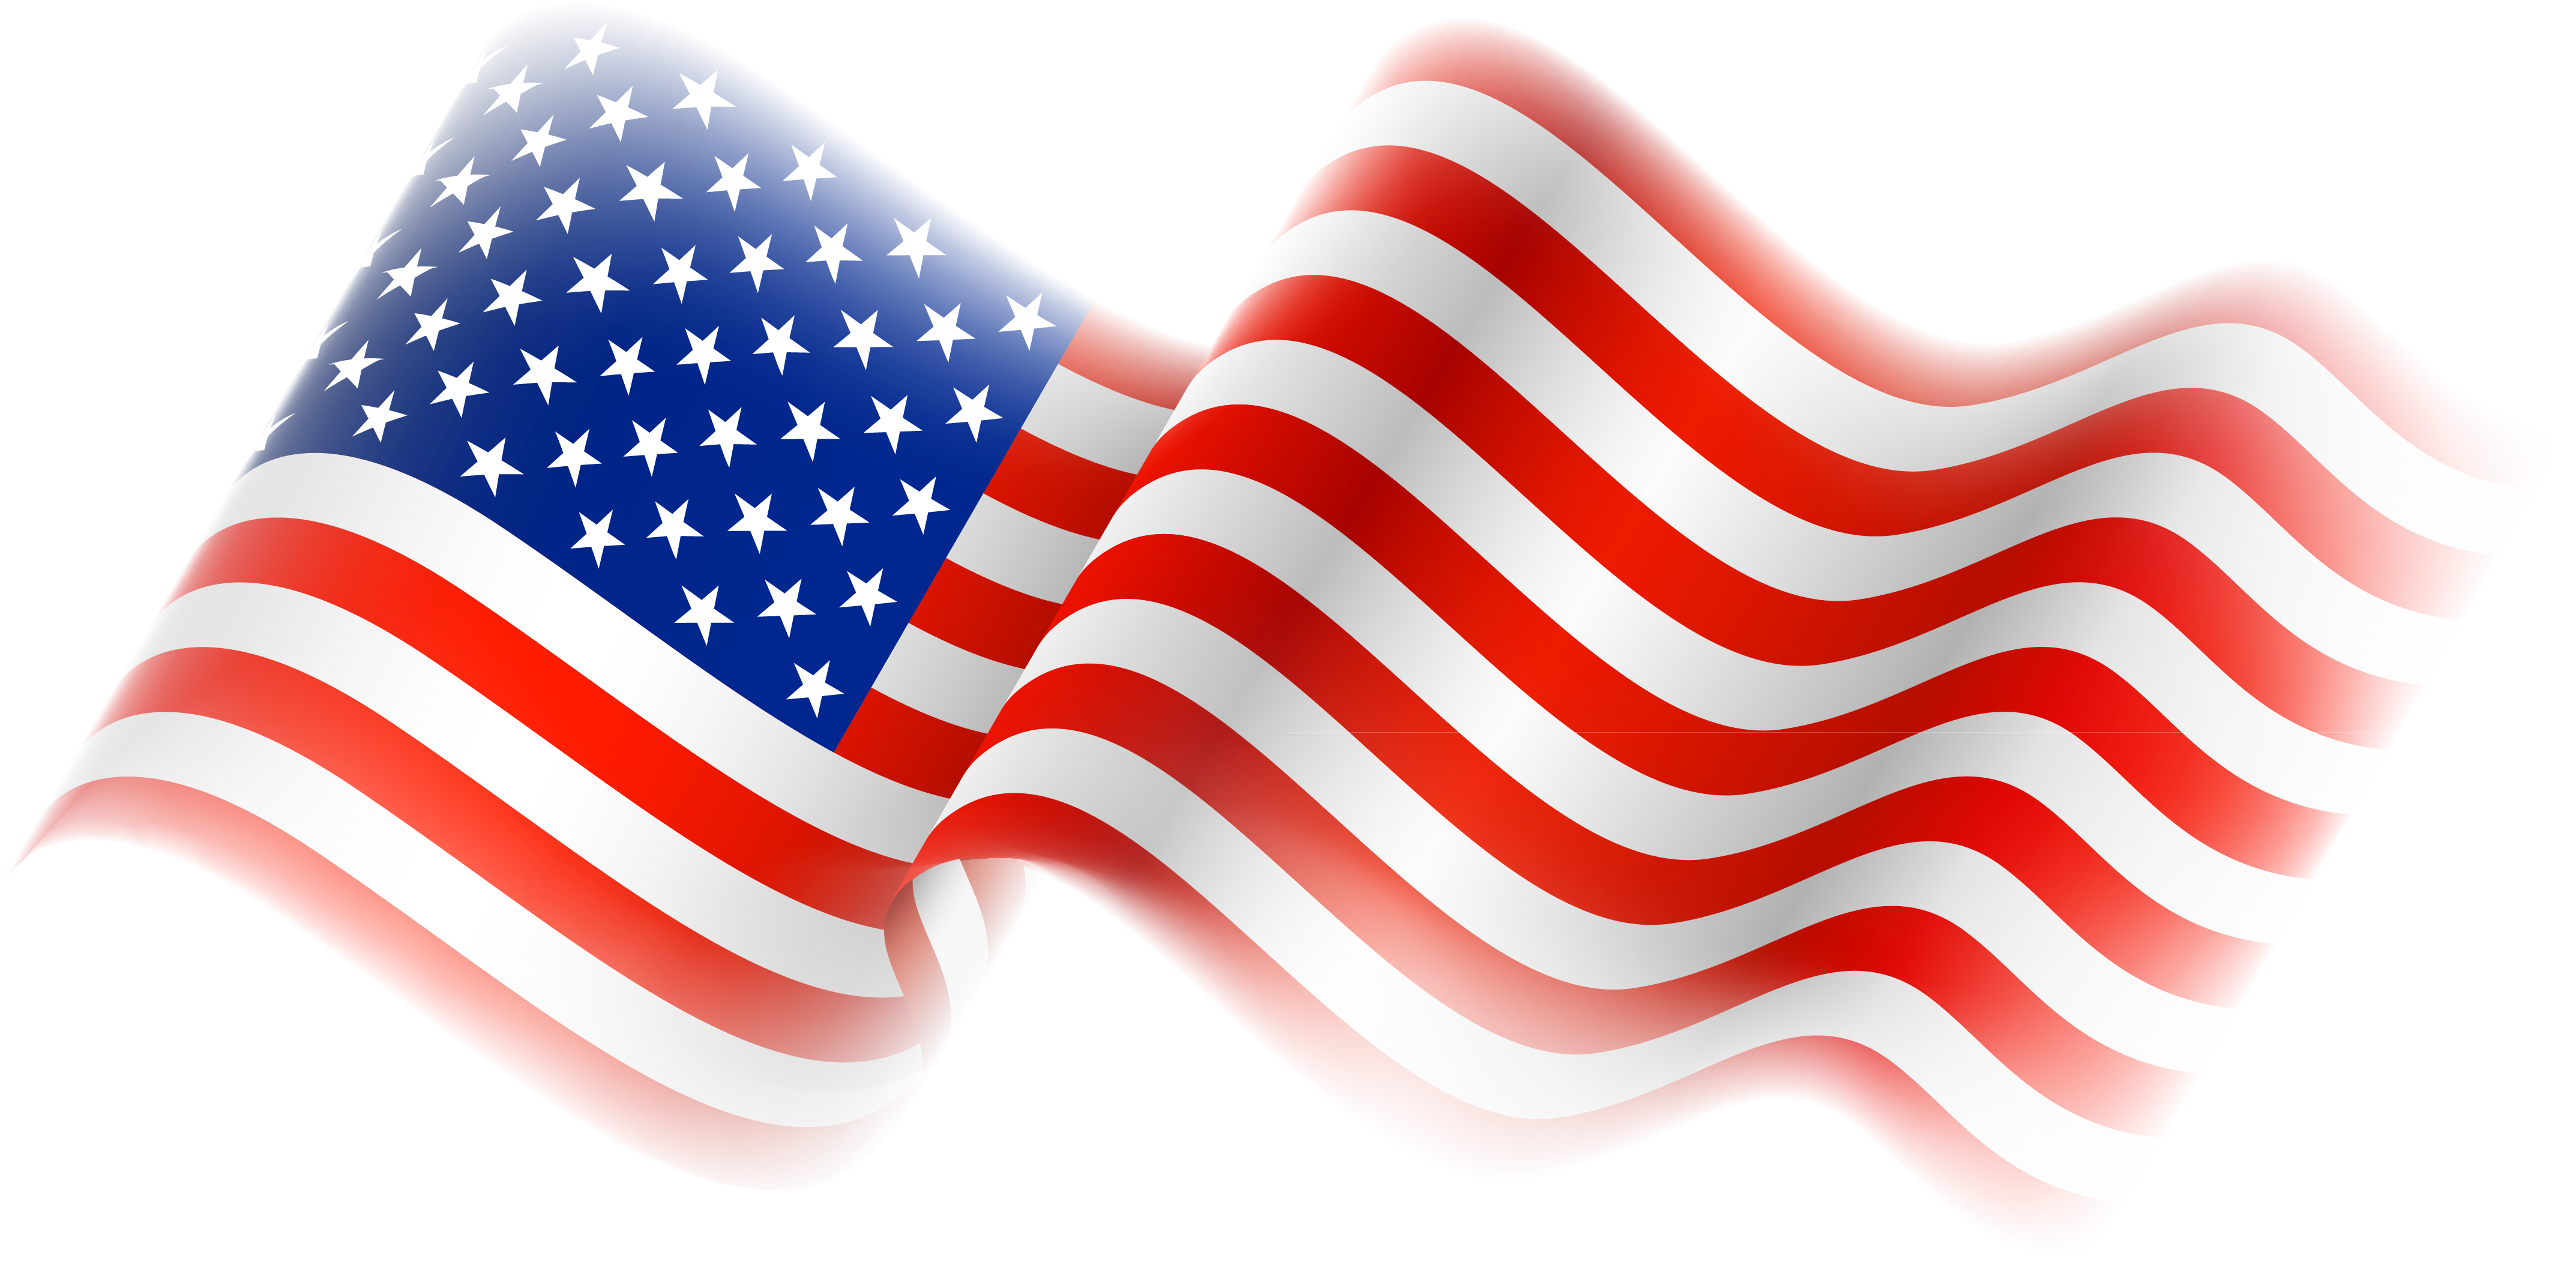 Independence Day Flag of the United States Wallpaper.